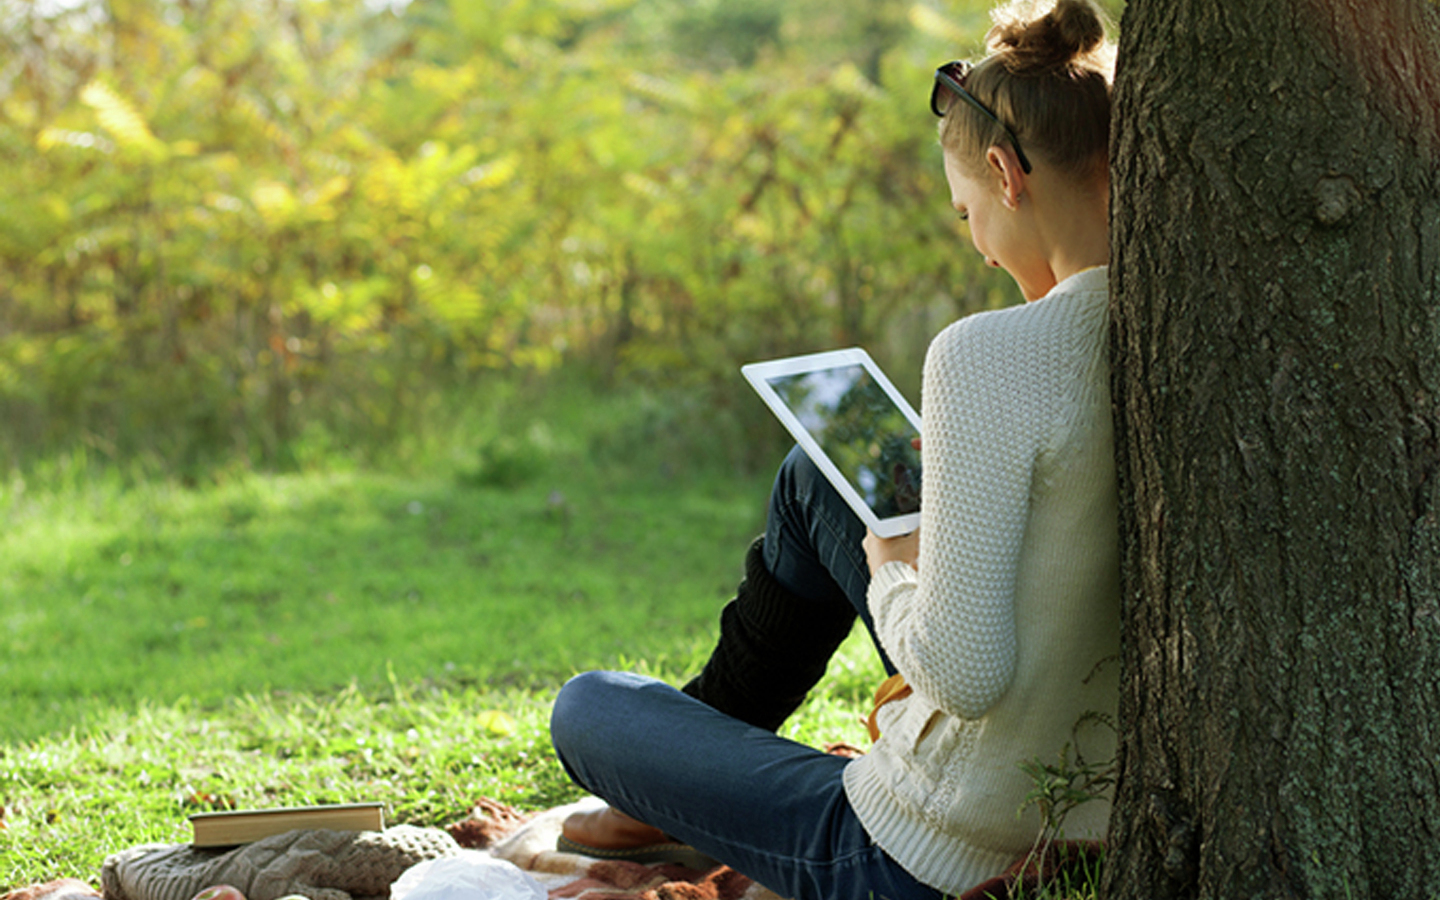 A woman sits in a park with an iPad